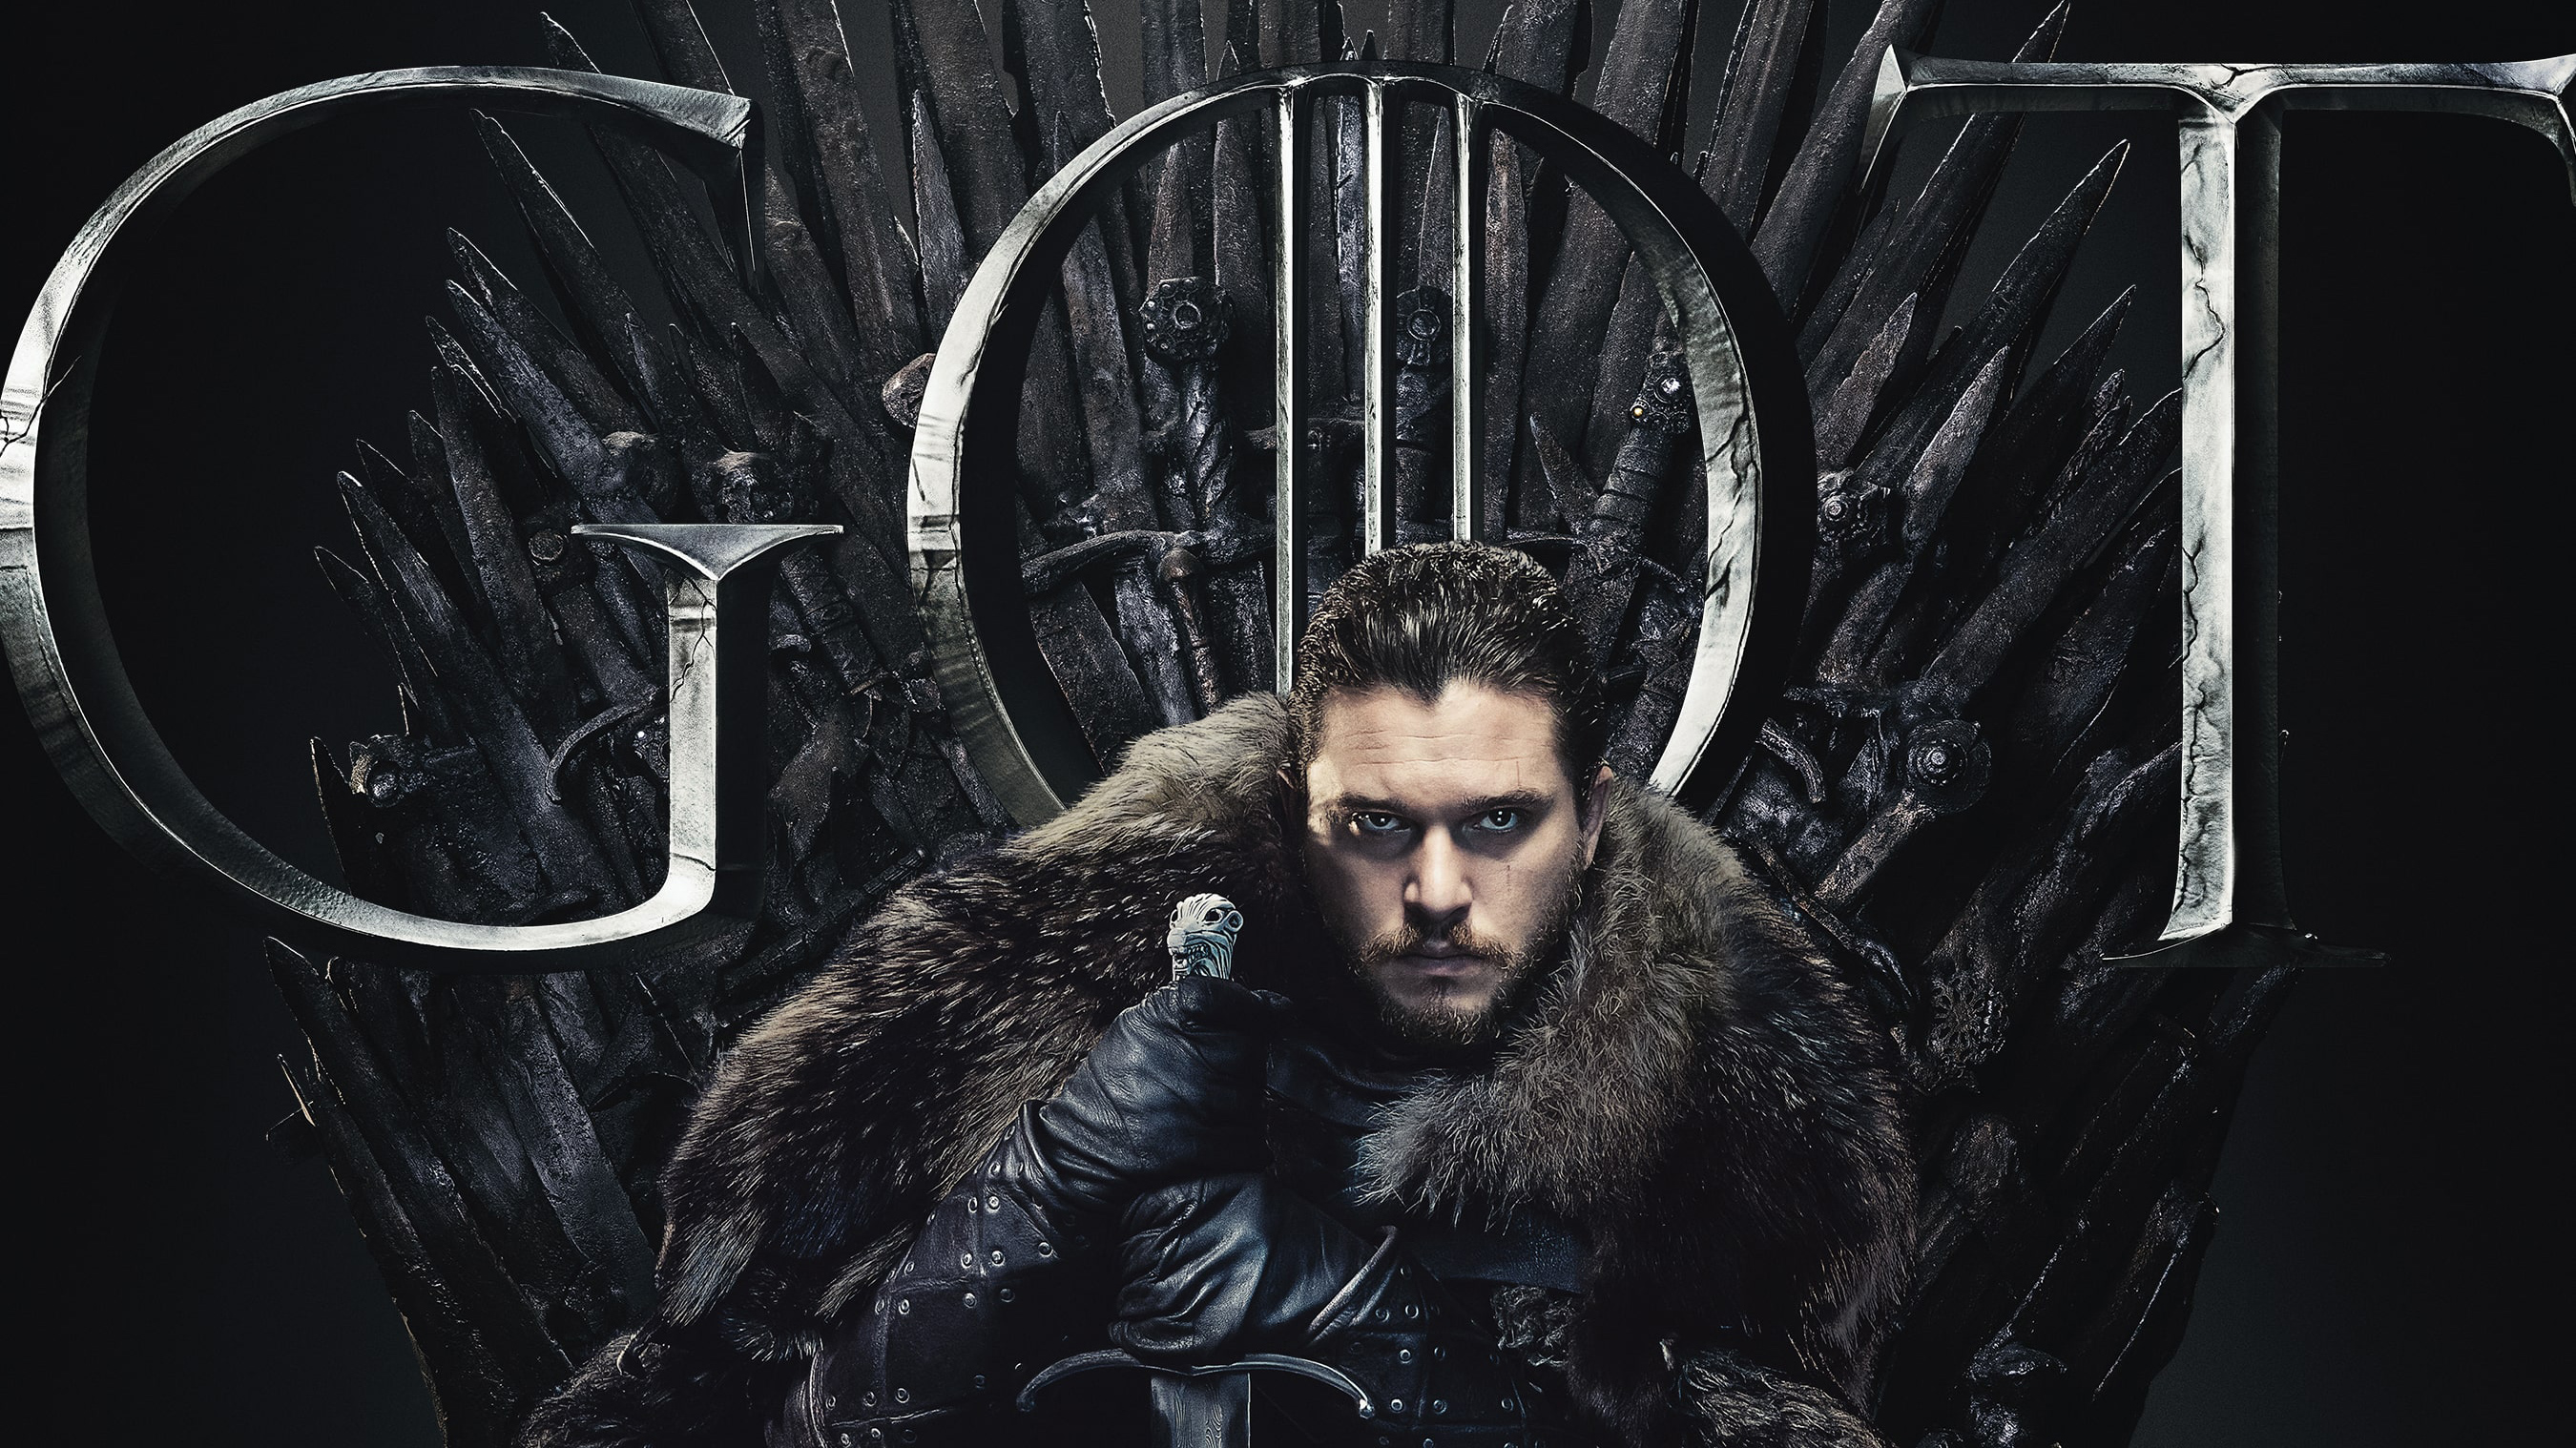 Jon Snow Game Of Thrones Season 8 Poster Hd Tv Shows 4k